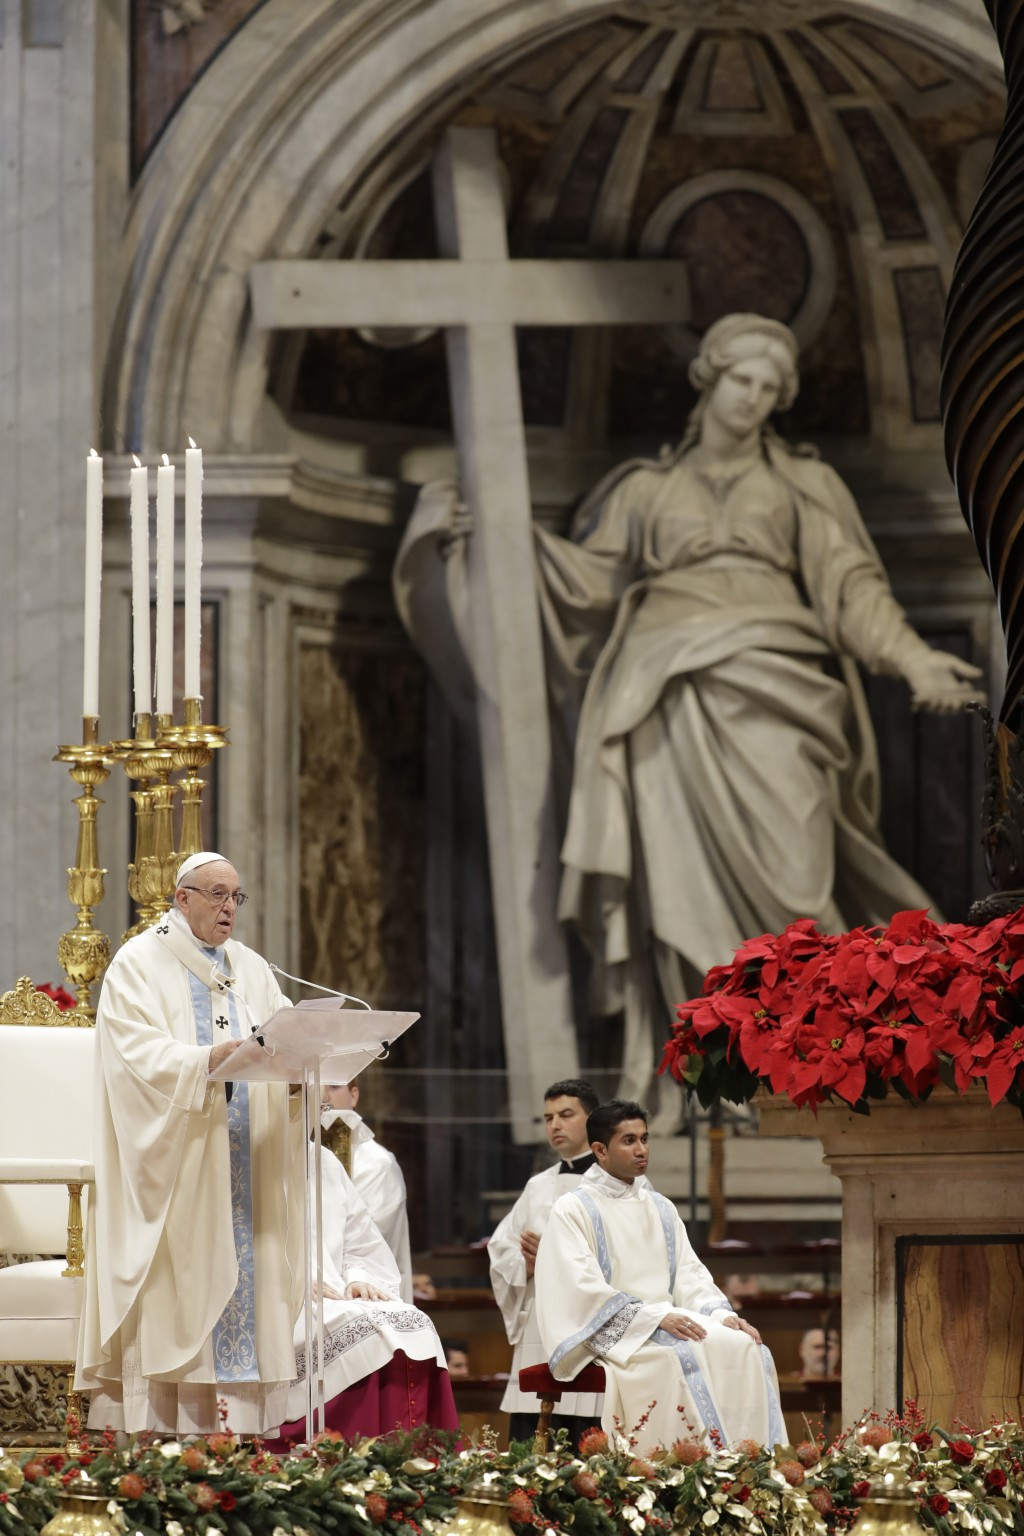 Pope Francis delivers his message as he celebrates a new year Mass in St. Peter's Basilica at the Vatican, Tuesday, Jan. 1, 2019. (AP Photo/Andrew Med...